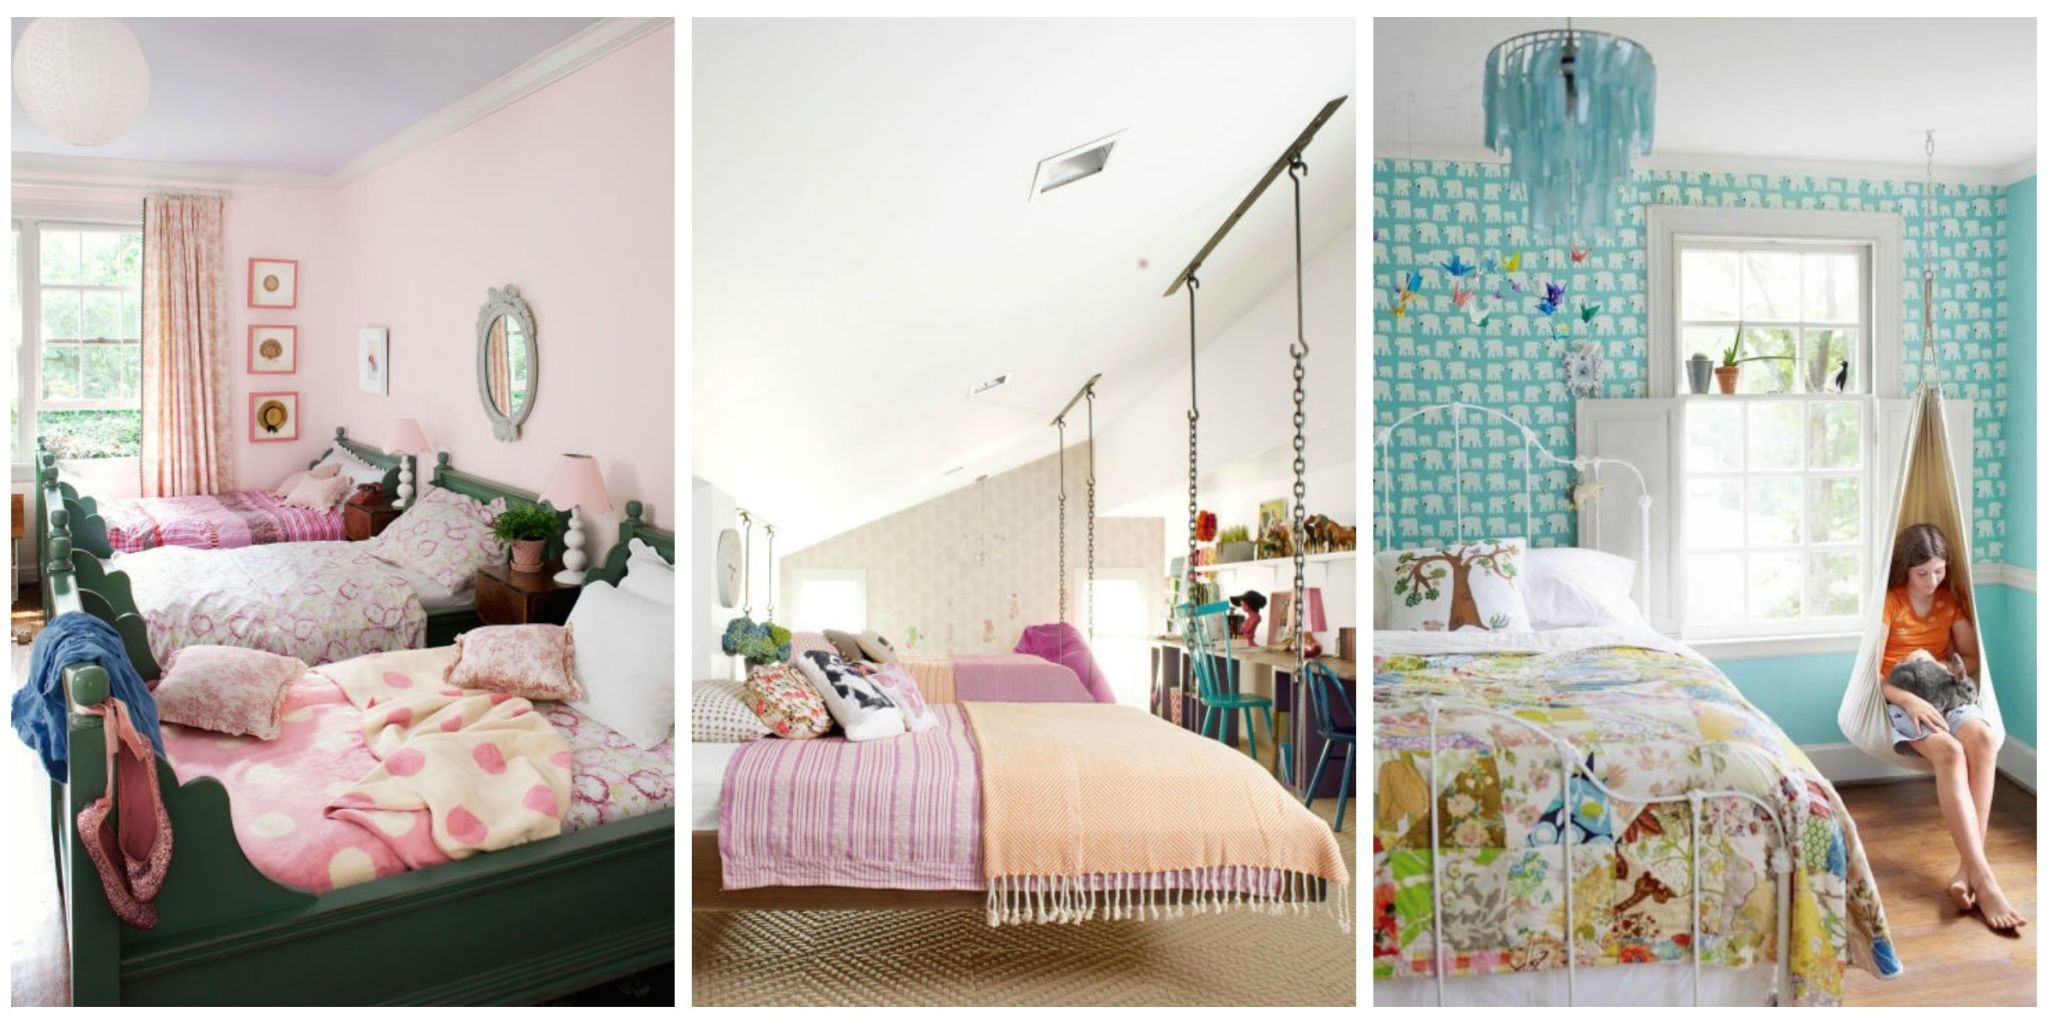 Delightful Your Daughter Will Love A Room Filled With Color, Patterns, And Cute  Accessories! Click Through To Find Oh So Pretty Bedroom Decorating Ideas  For Girls Of ...